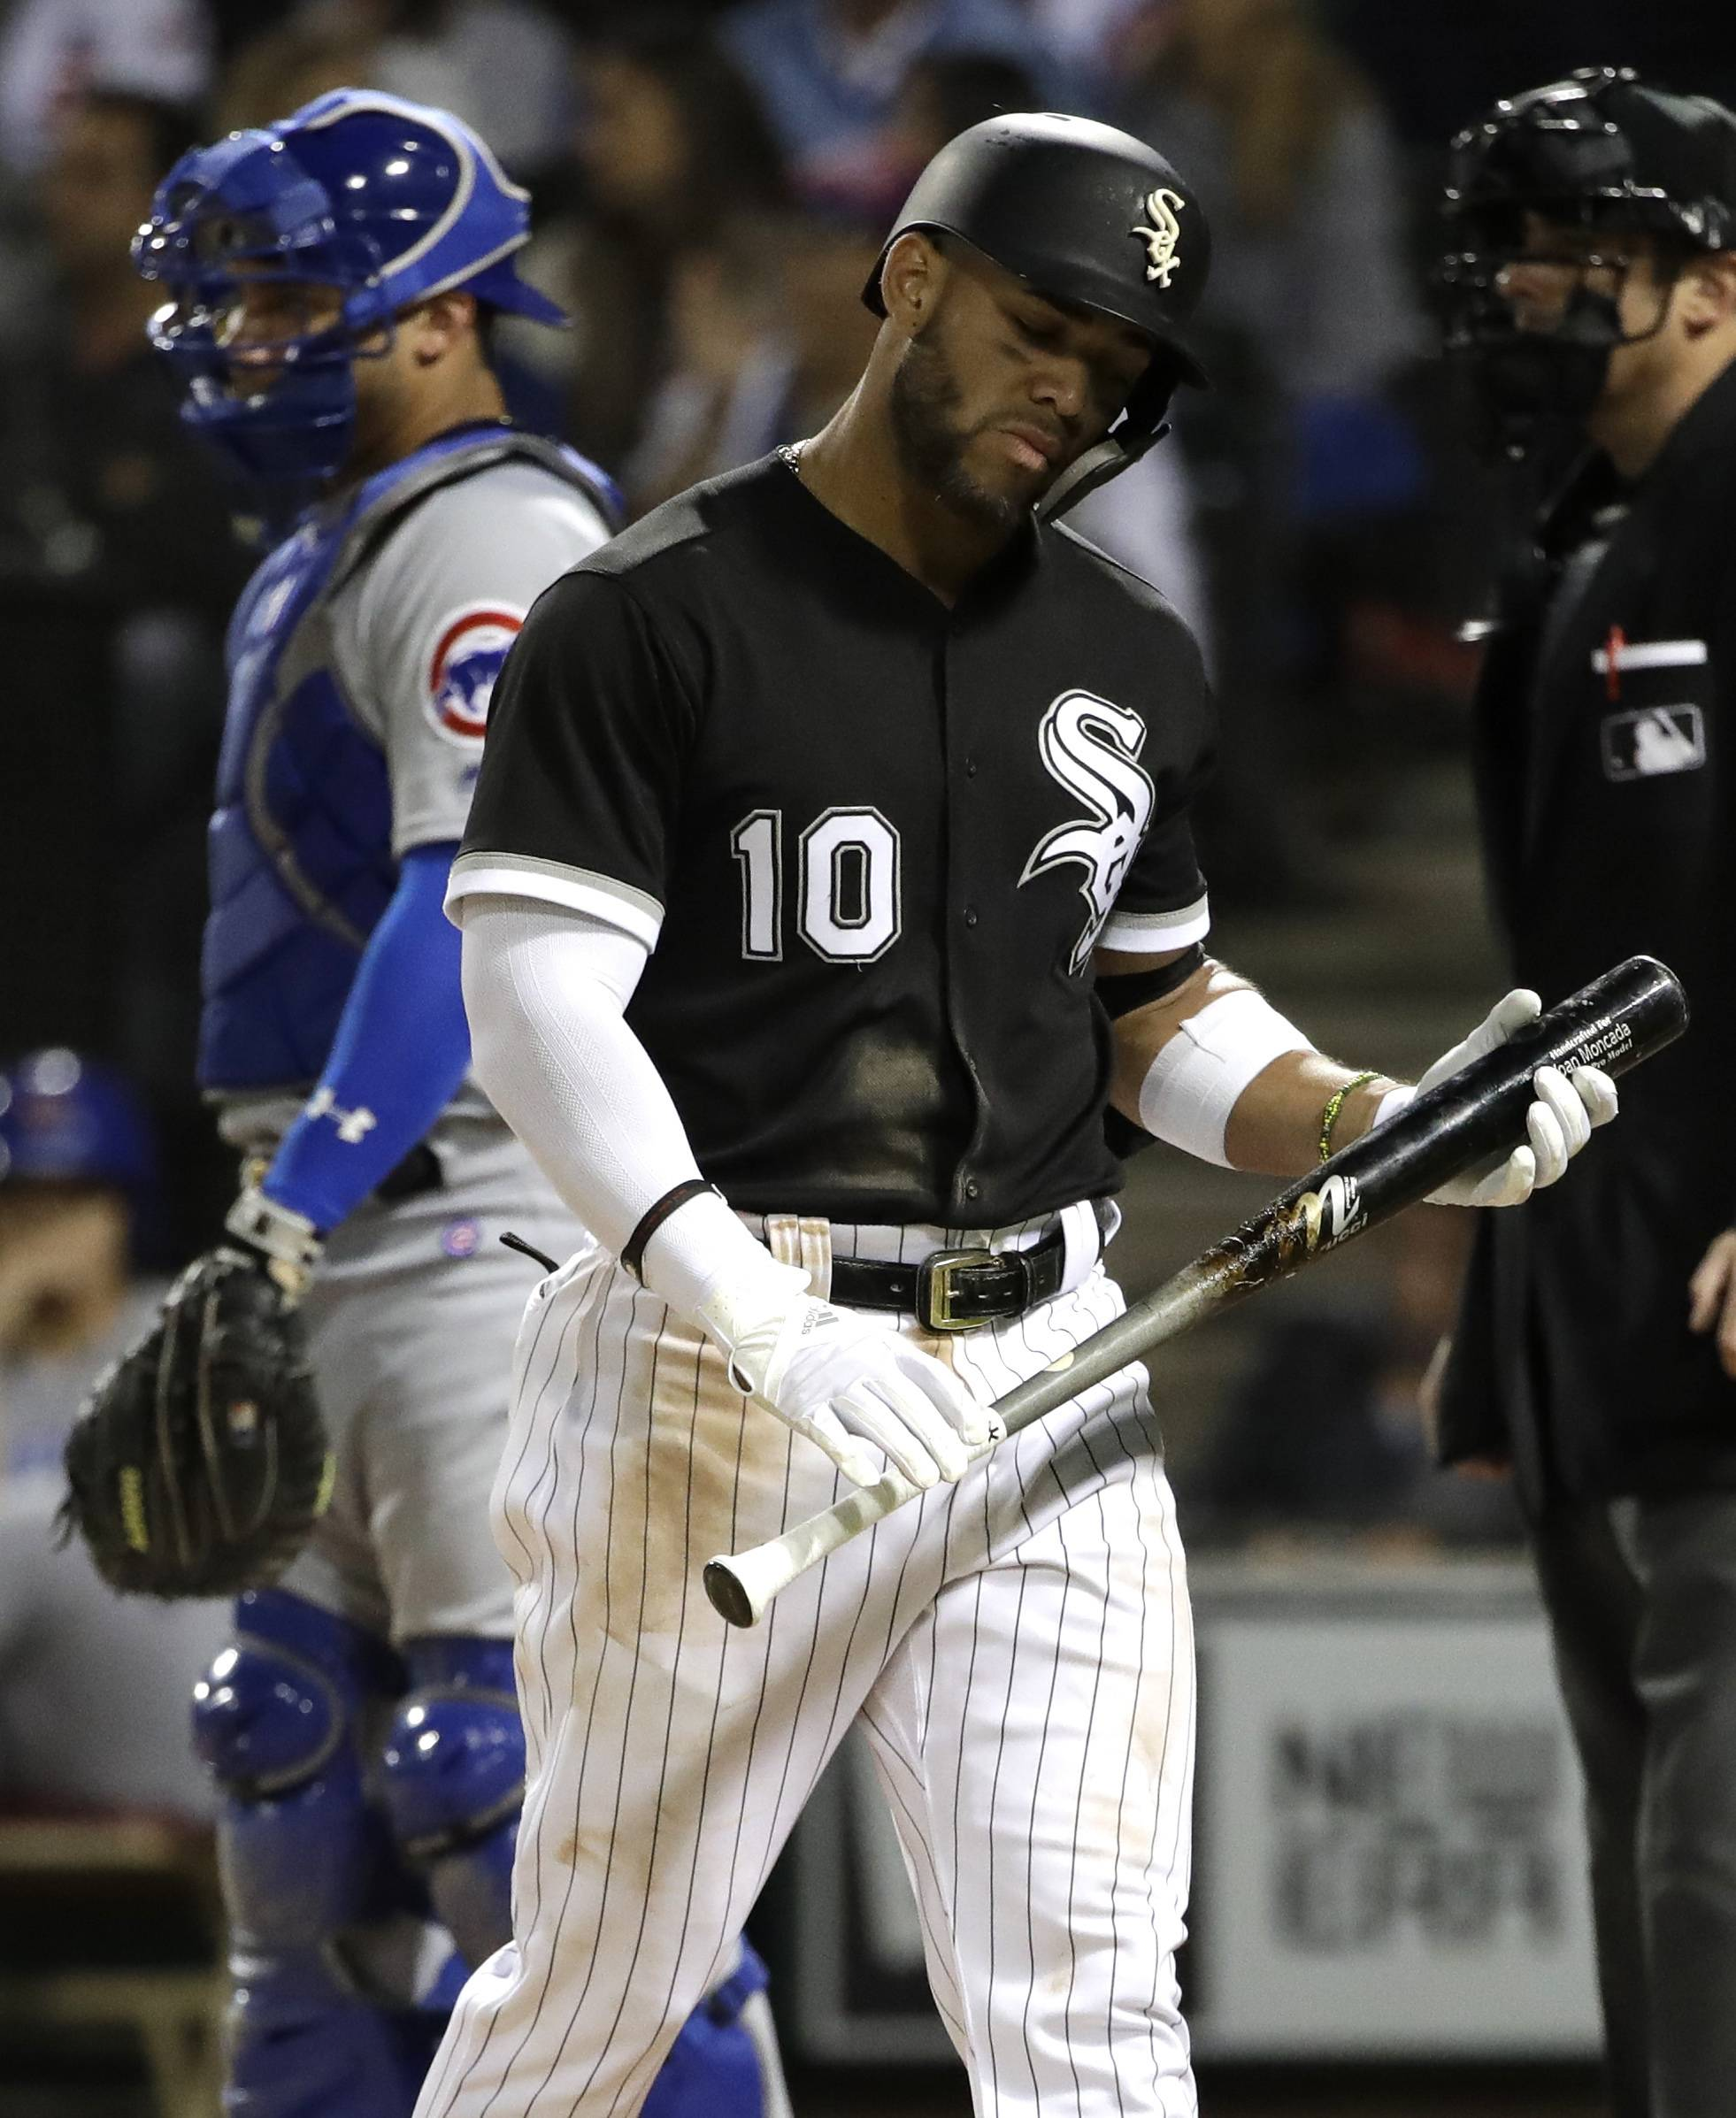 Chicago White Sox's Yoan Moncada reacts after being called out on strikes during the fourth inning of a baseball game against the Chicago Cubs, Saturday, Sept. 22, 2018, in Chicago. (AP Photo/Nam Y. Huh)